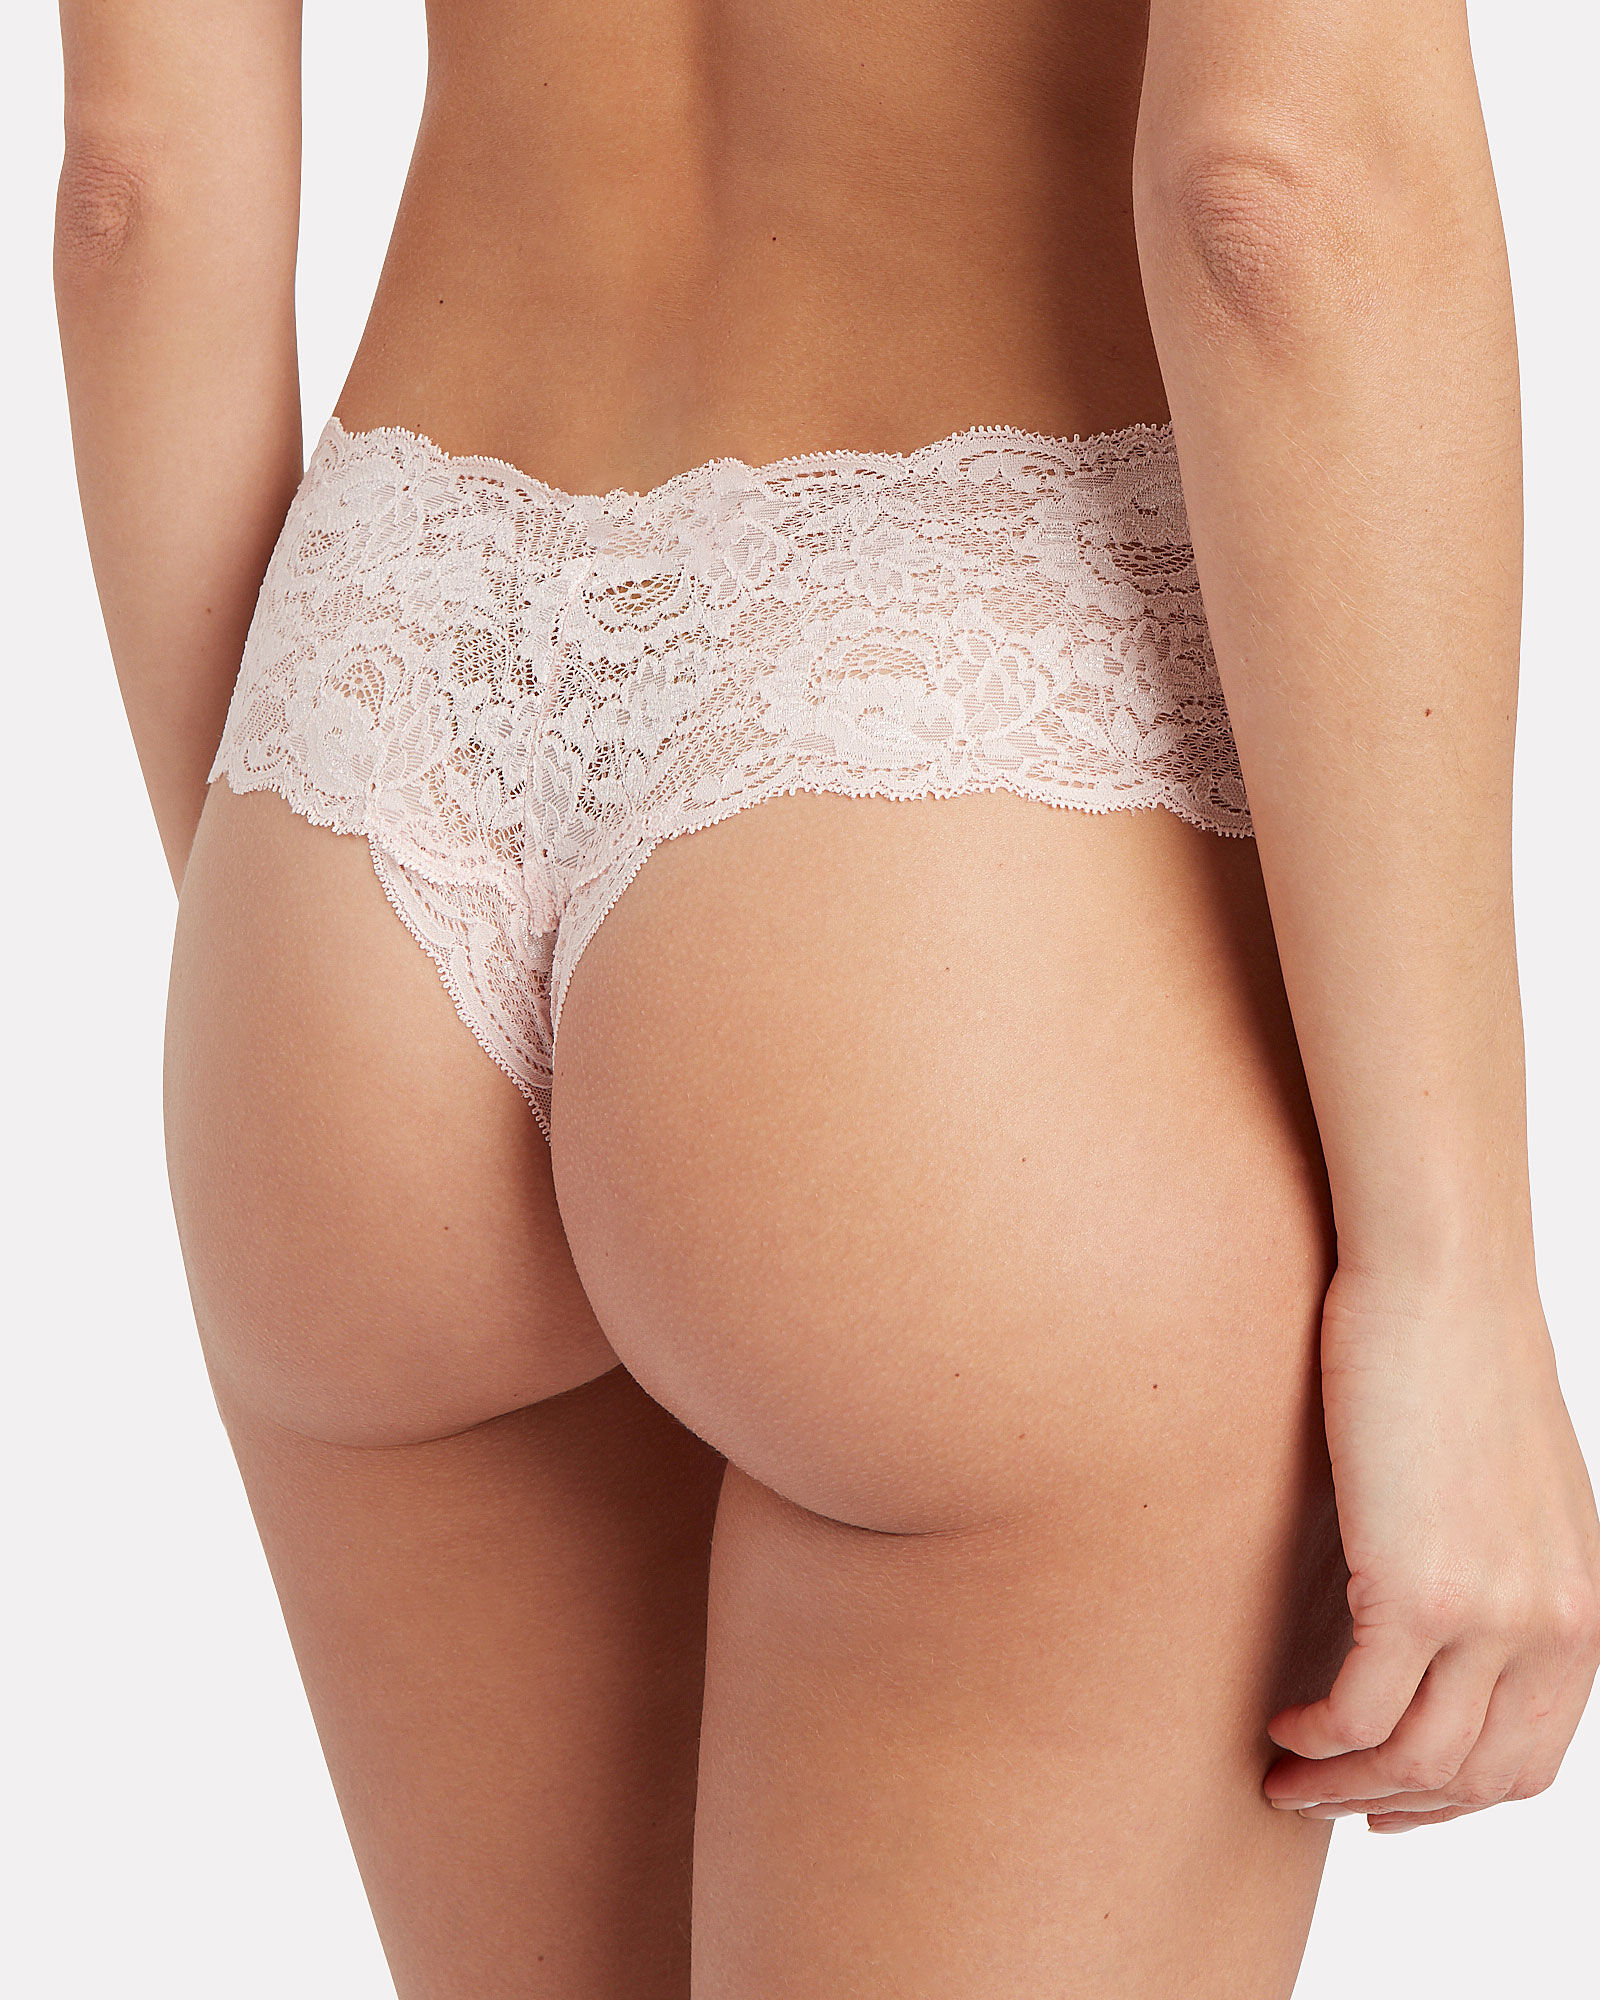 Never Say Never Comfie Thong 3-Pack, PASTELS, hi-res